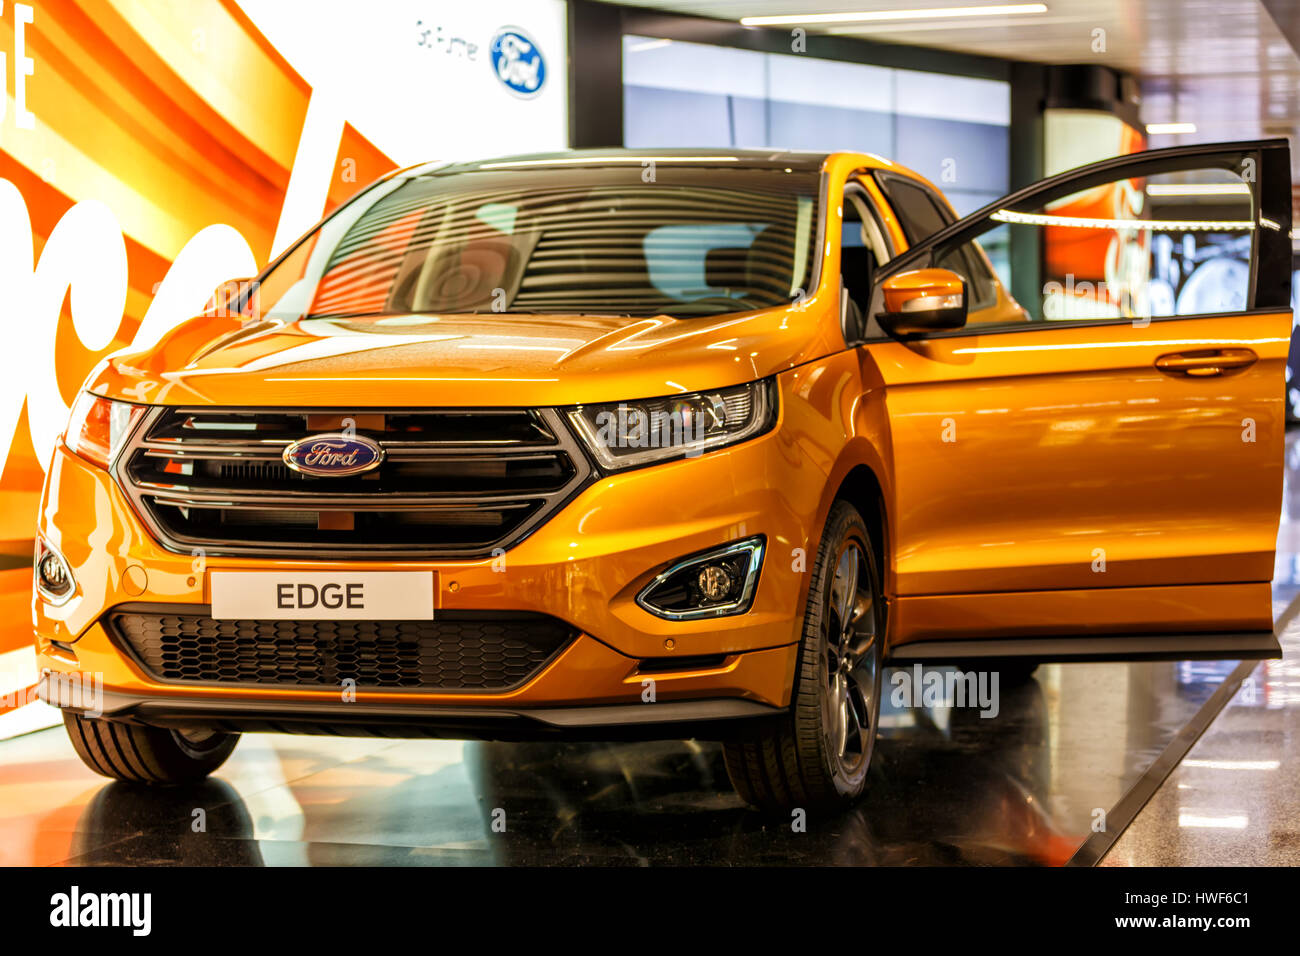 ford suv edge photos ford suv edge images alamy. Black Bedroom Furniture Sets. Home Design Ideas